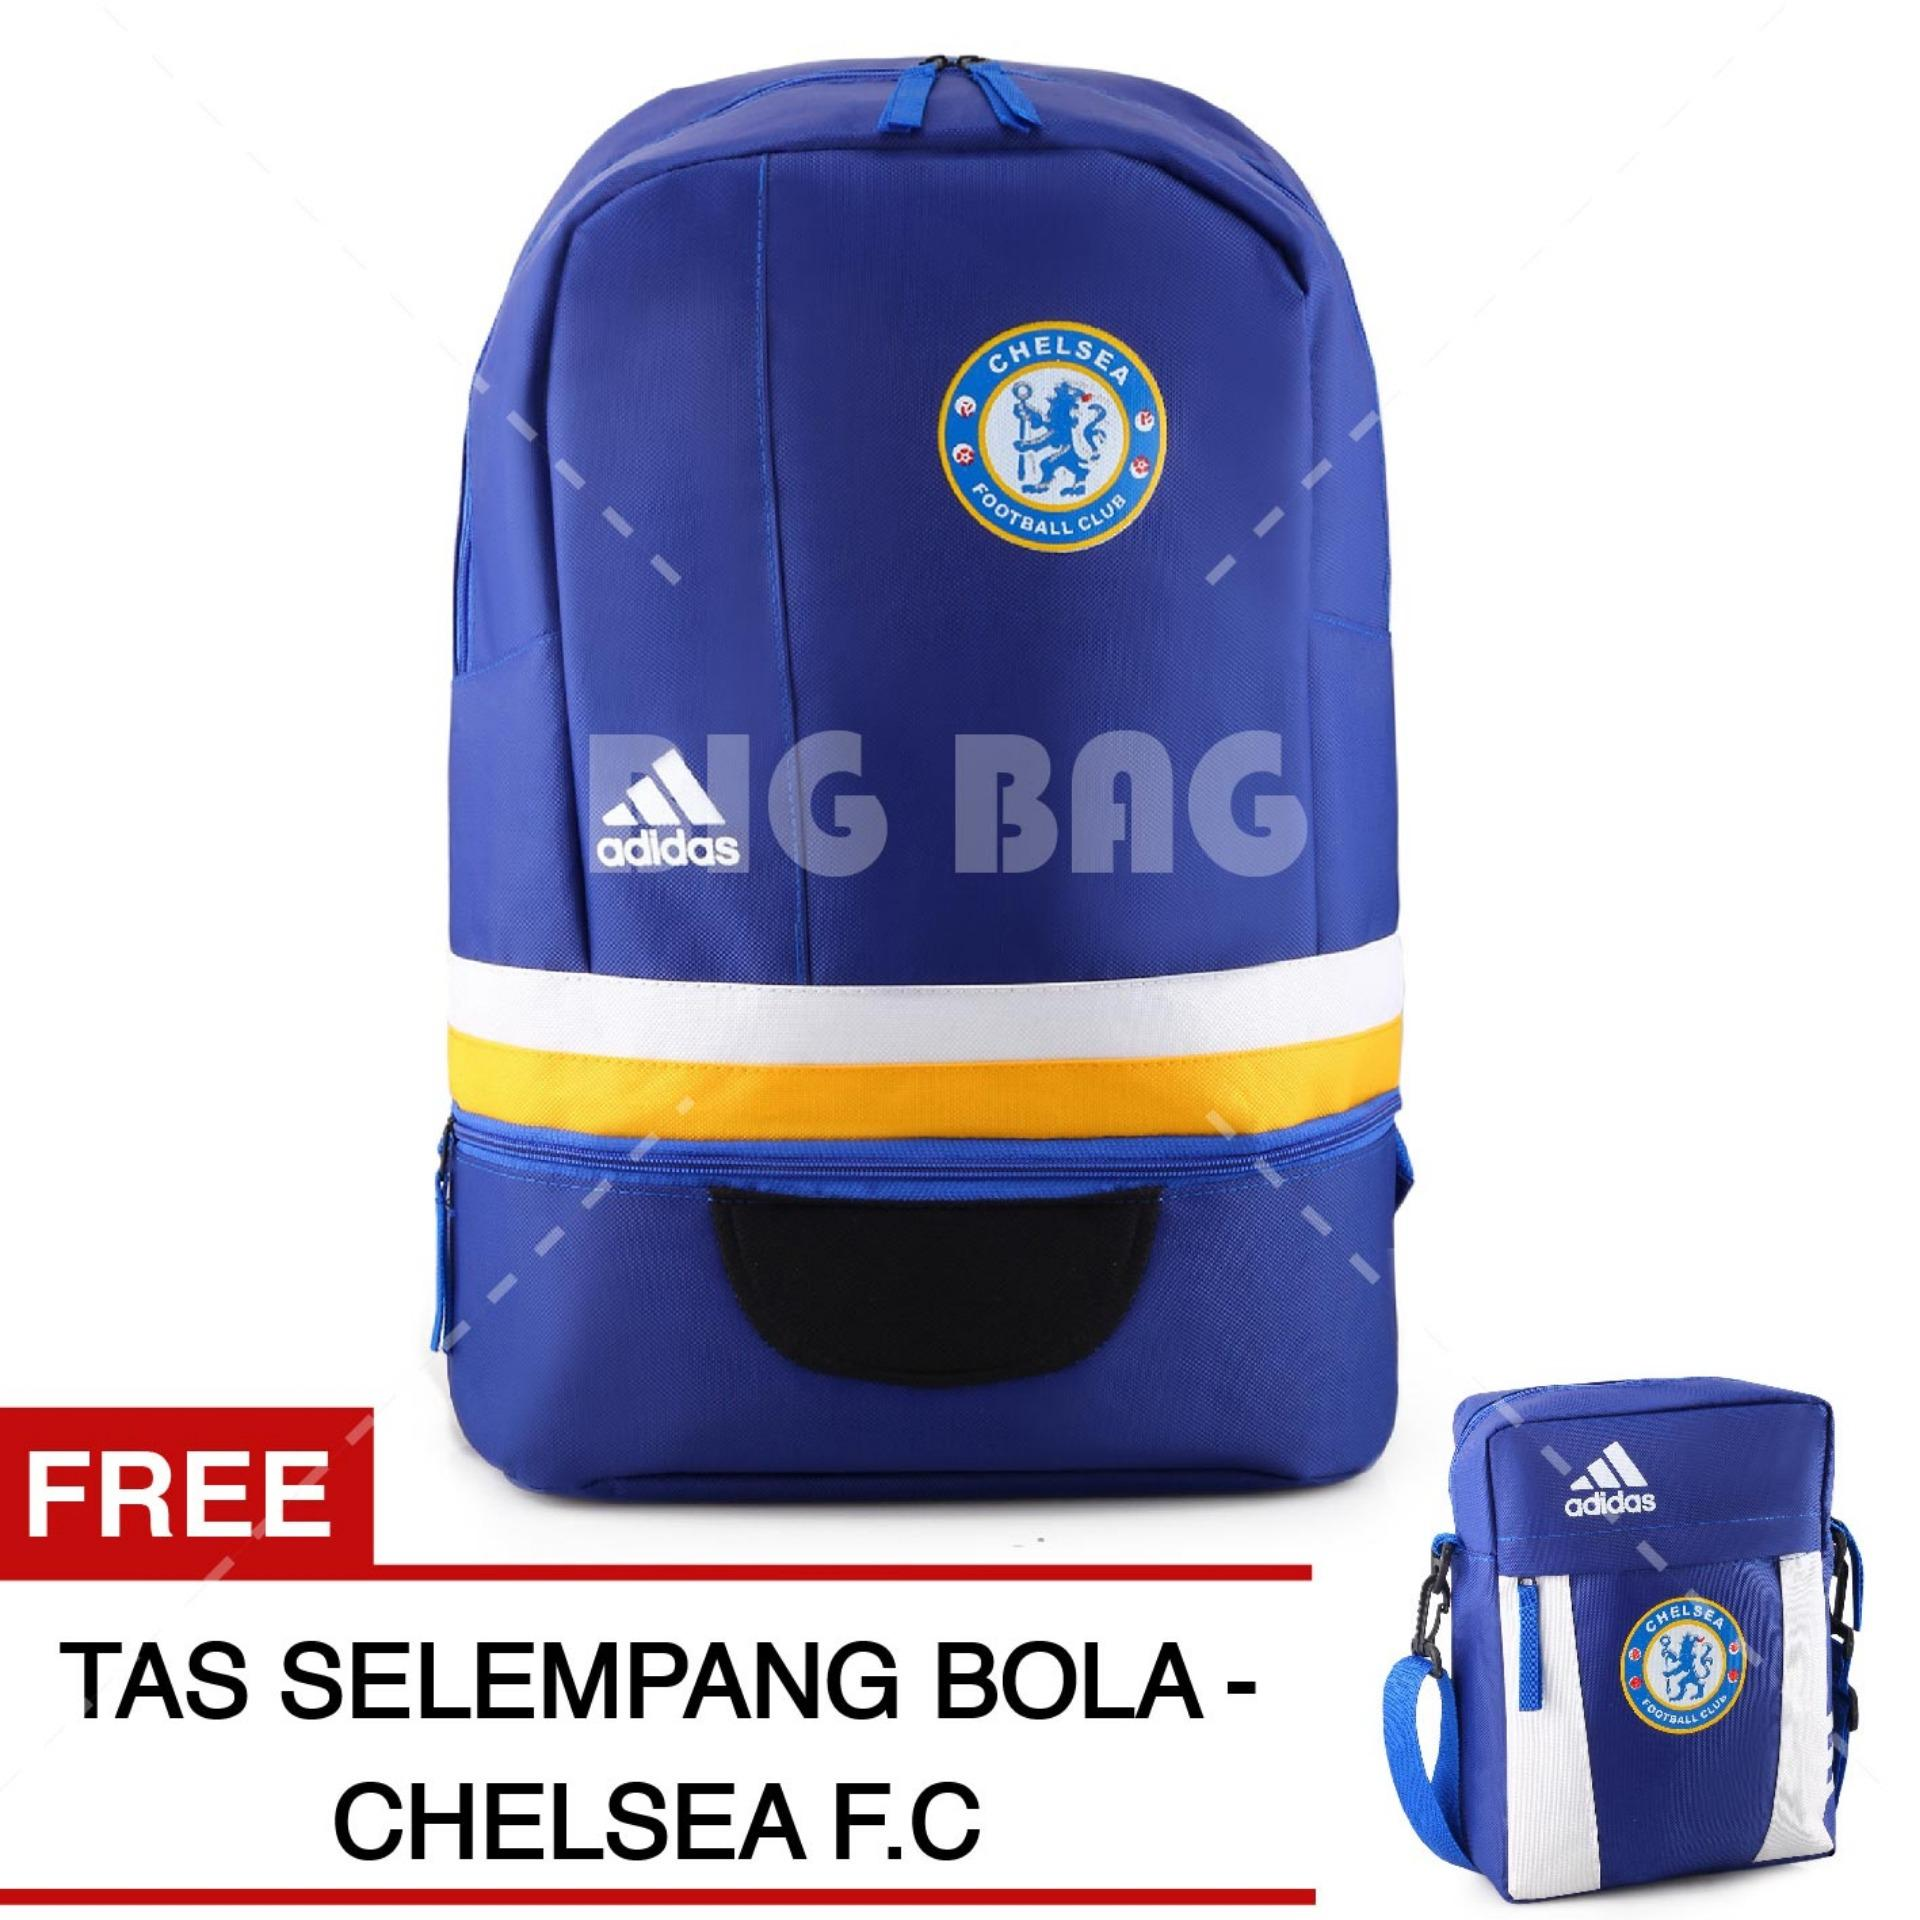 Tas Ransel Adidas Bola Pria Chelsea FC Laptop Backpack Men Soccer Editions - Blue + Raincover + FREE Tas Selempang Adidas Chelsea FC - Blue